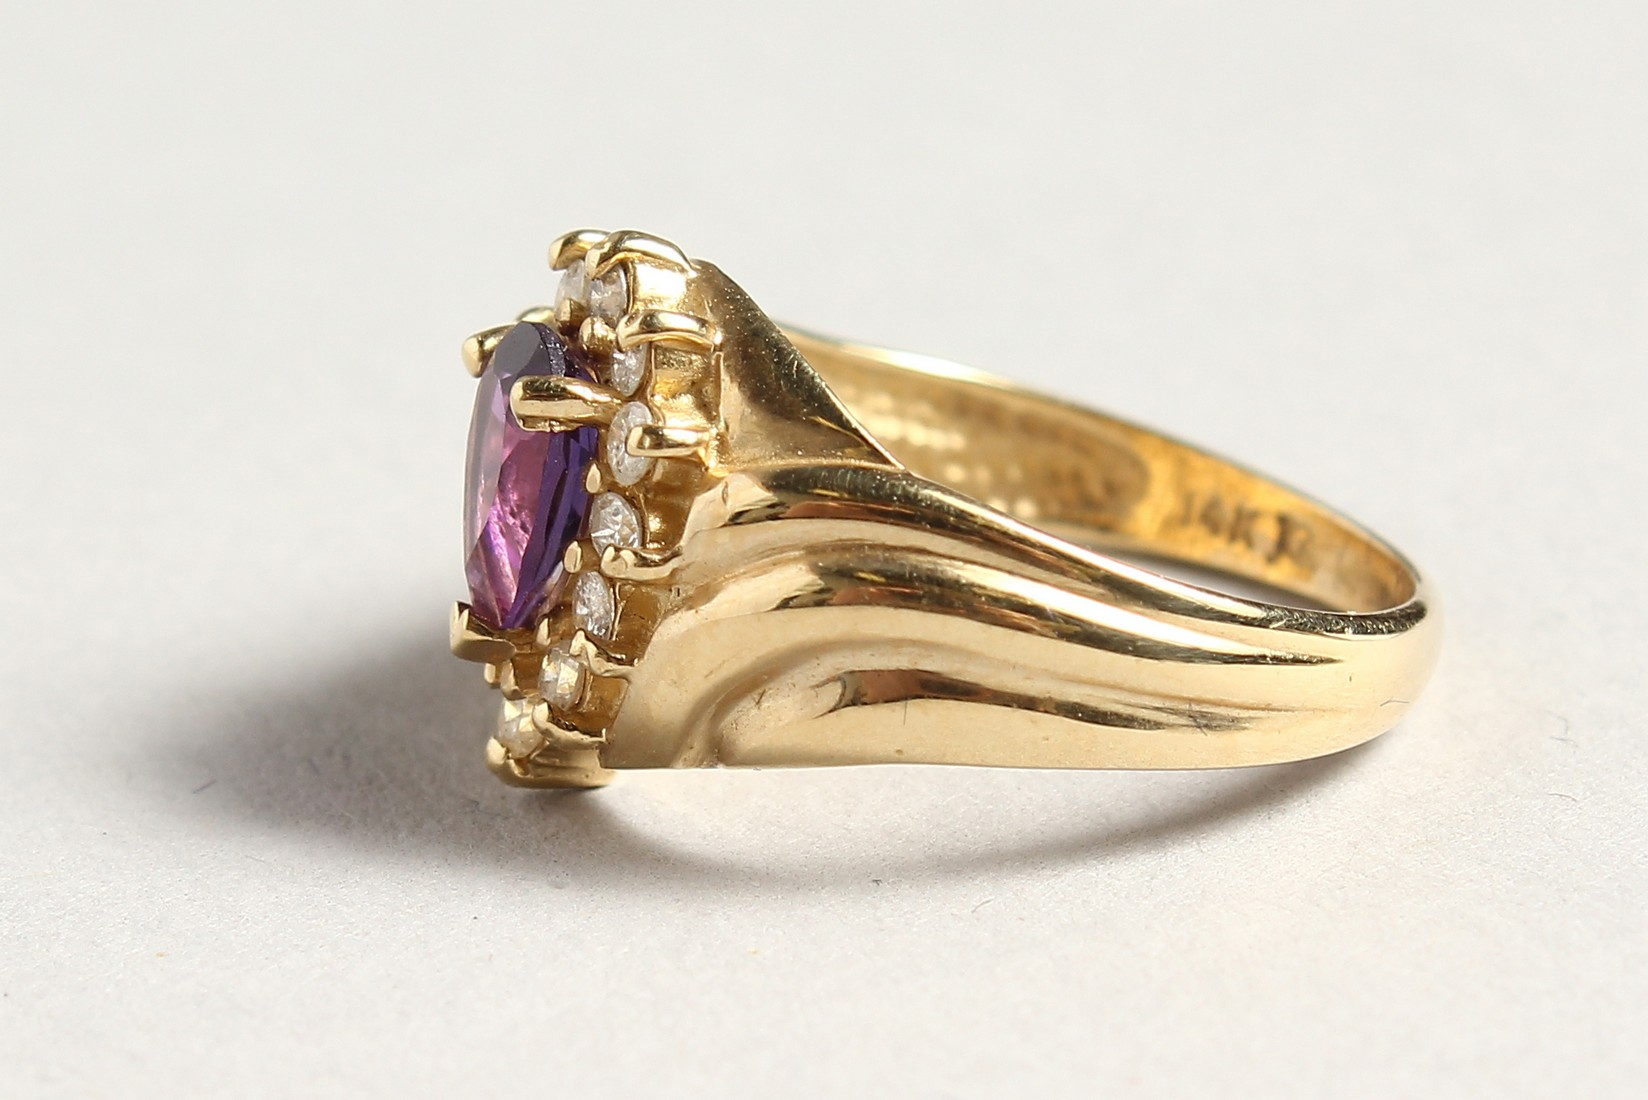 A 14CT GOLD, AMETHYST AND DIAMOND TEAR DROP RING - Image 2 of 4